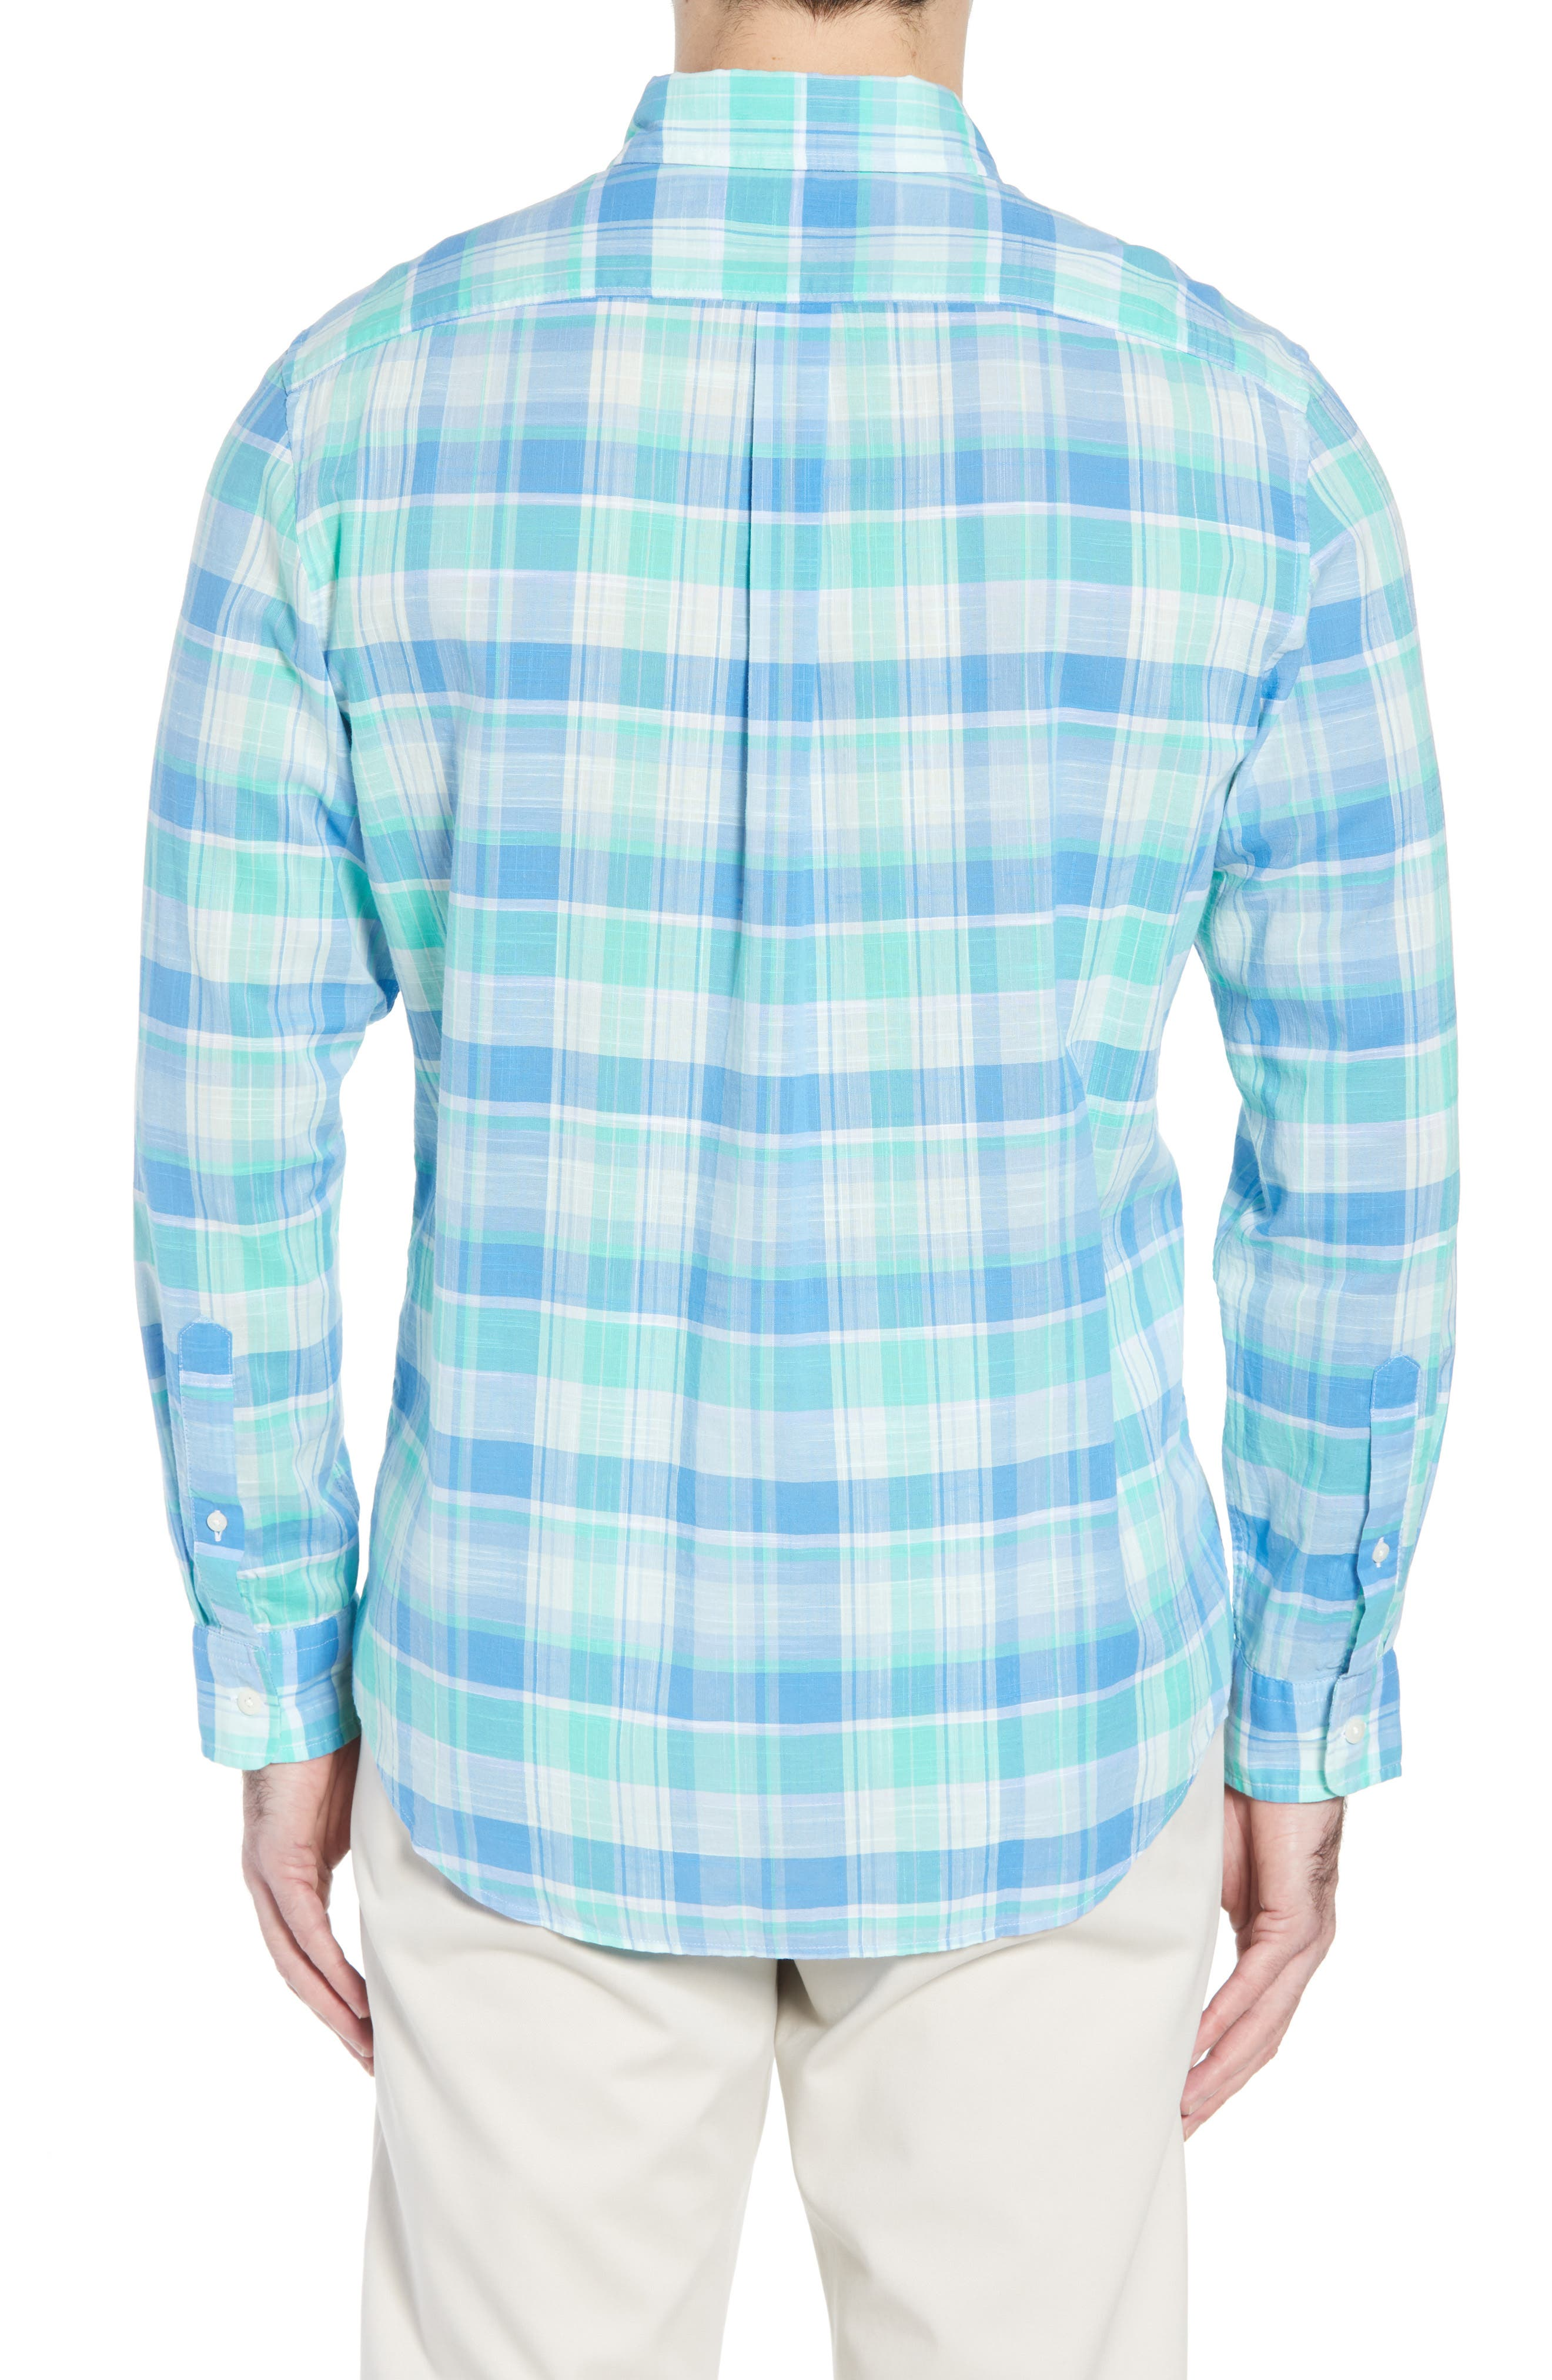 Homer Pond Murray Classic Fit Plaid Sport Shirt,                             Alternate thumbnail 3, color,                             Antigua Green